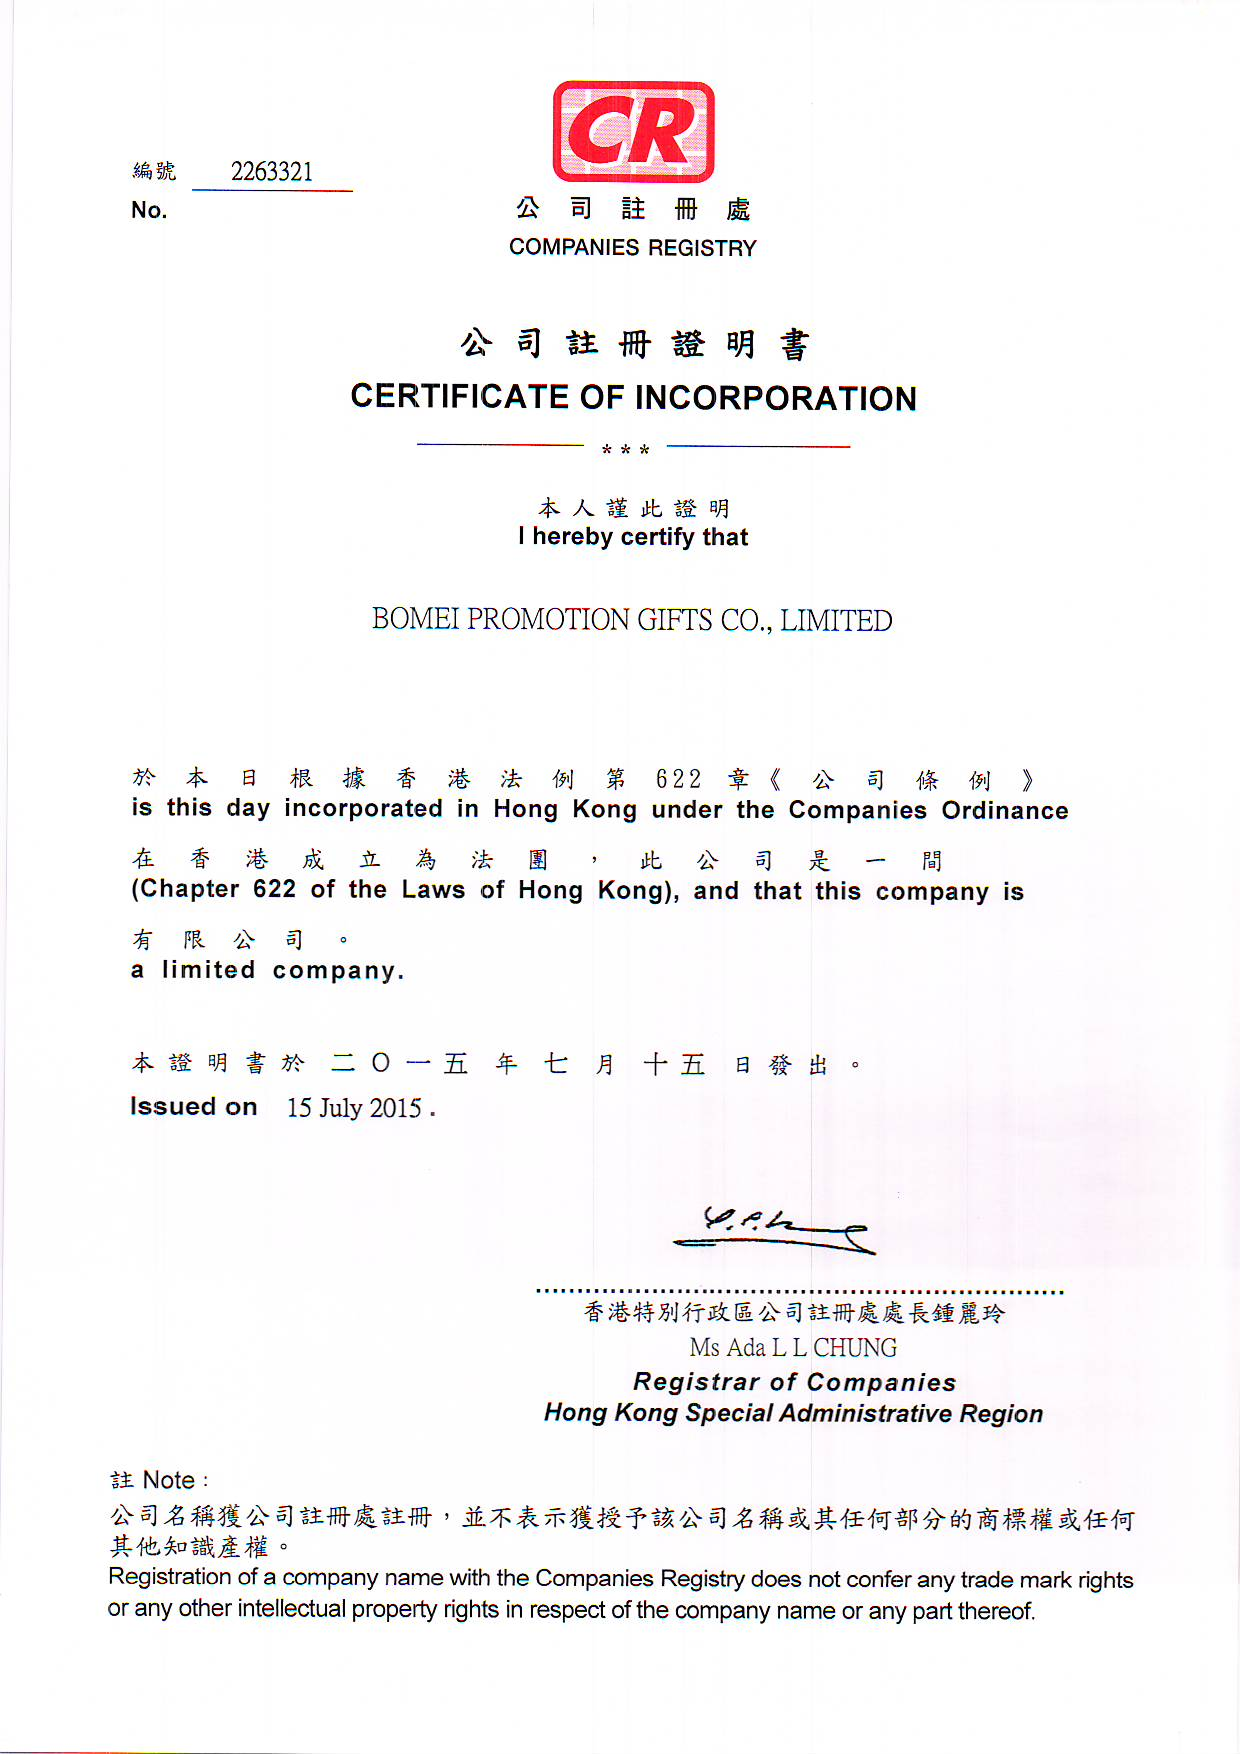 BUSINESS REGIESTER CERTIFICATE